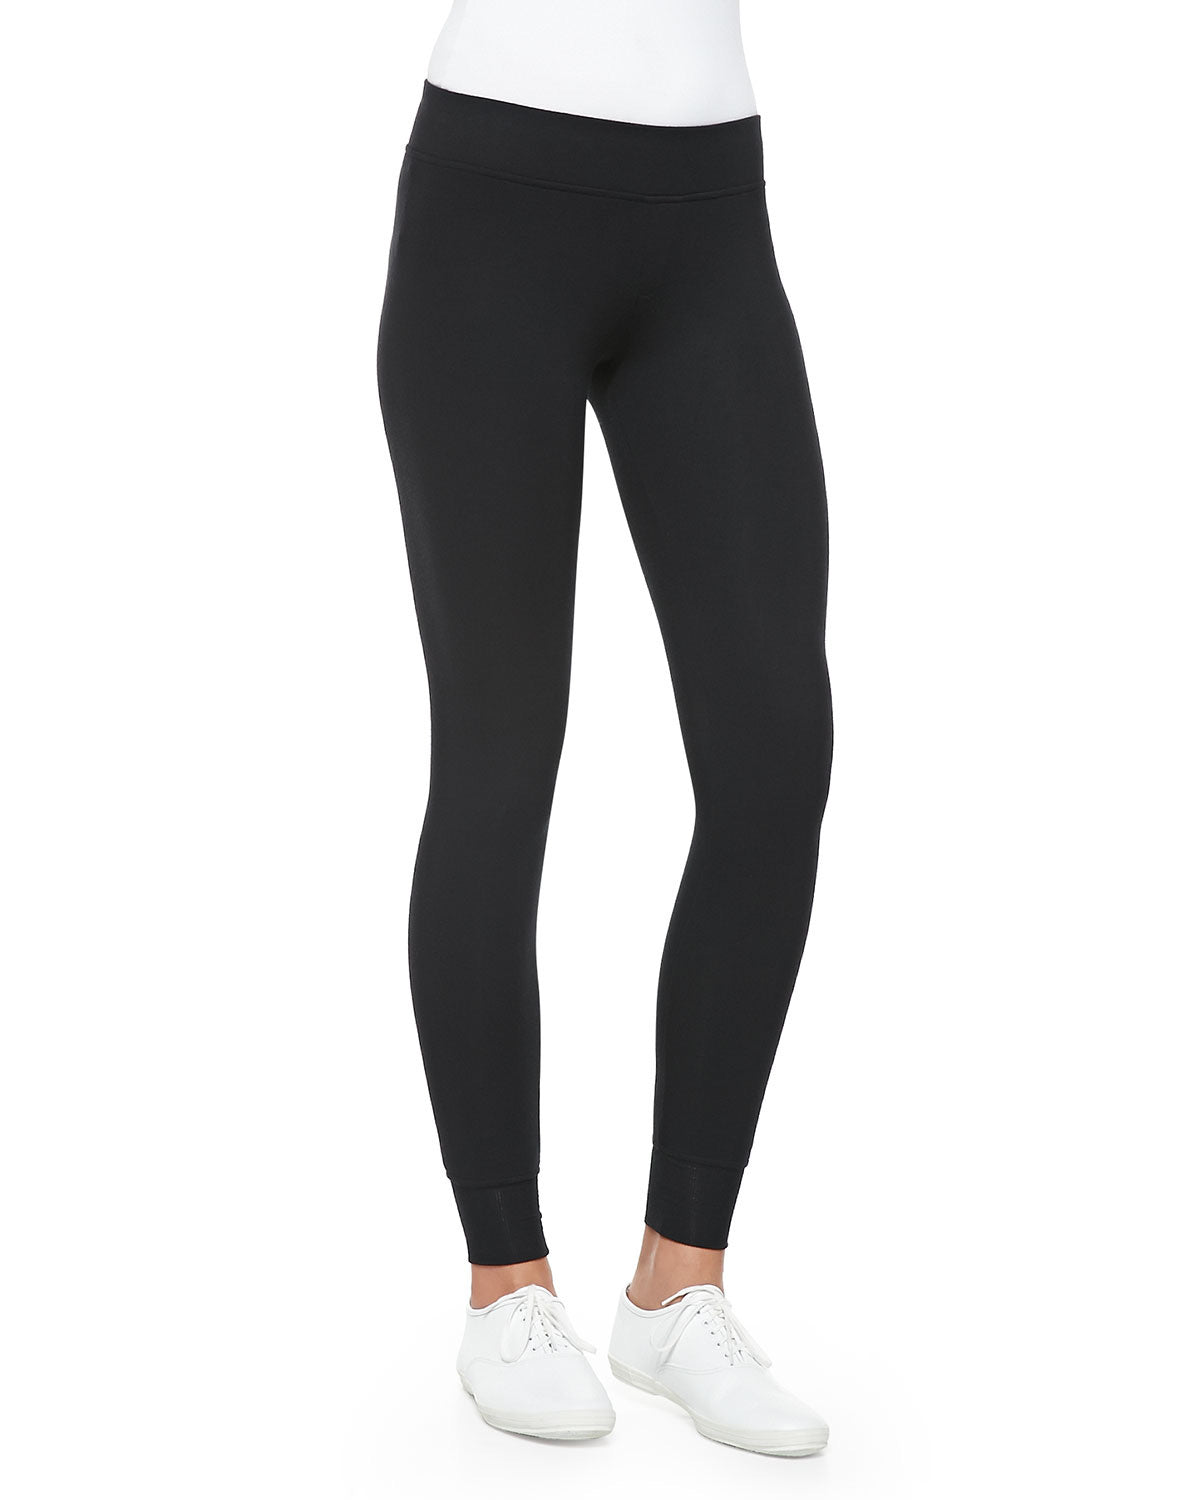 Long Yoga Tights - Black